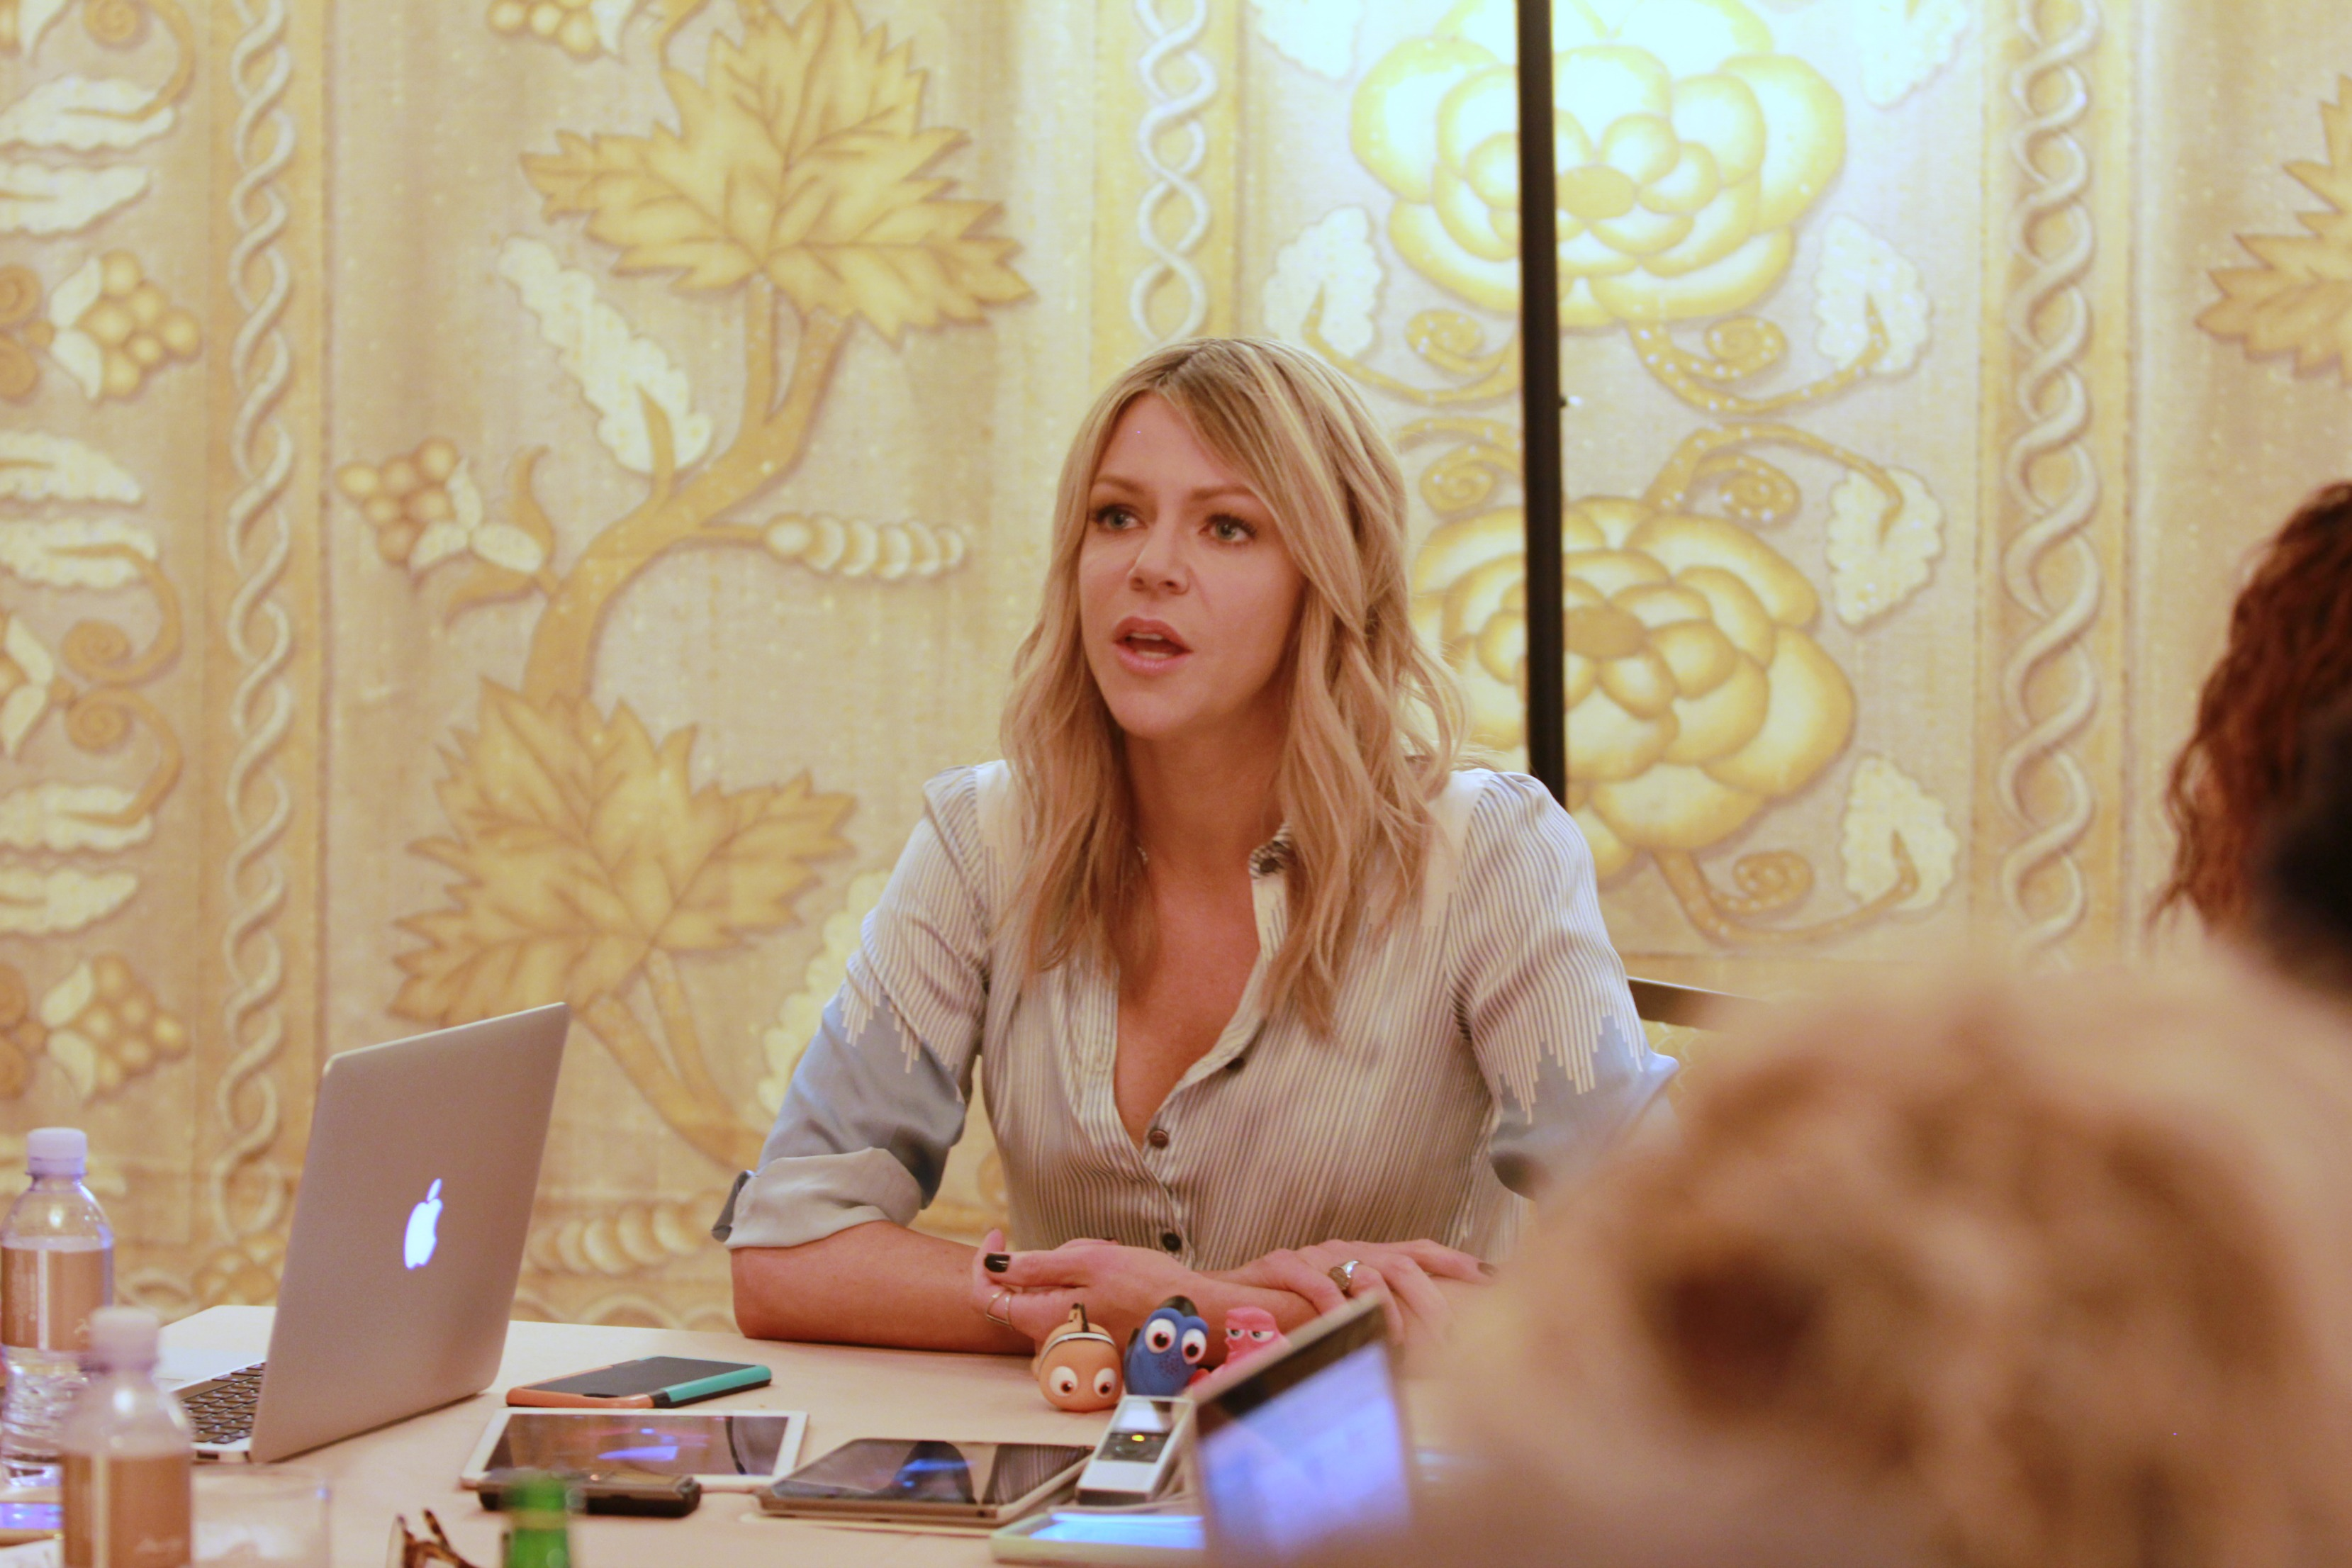 Talking with Kaitlin Olson about Finding Dory #FindingDoryEvent